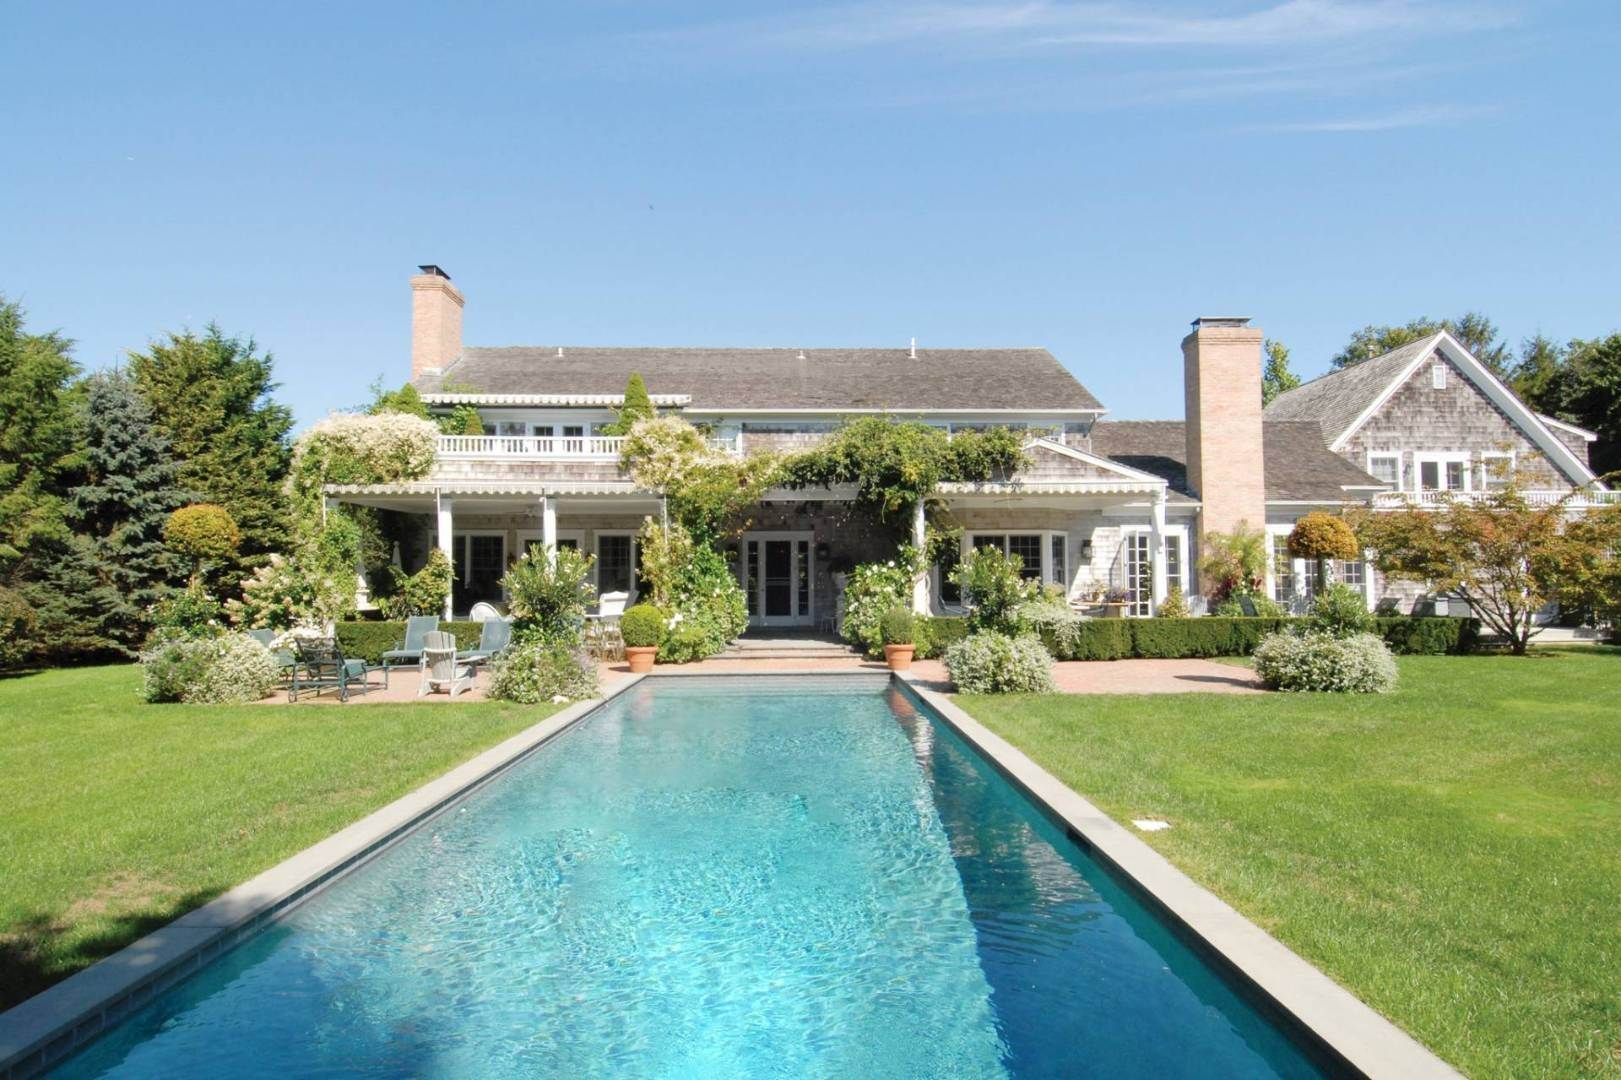 Single Family Home at Luxury Rental In Desirable East Hampton Village In Estate Area 325 Georgica Rd, East Hampton, NY 11937